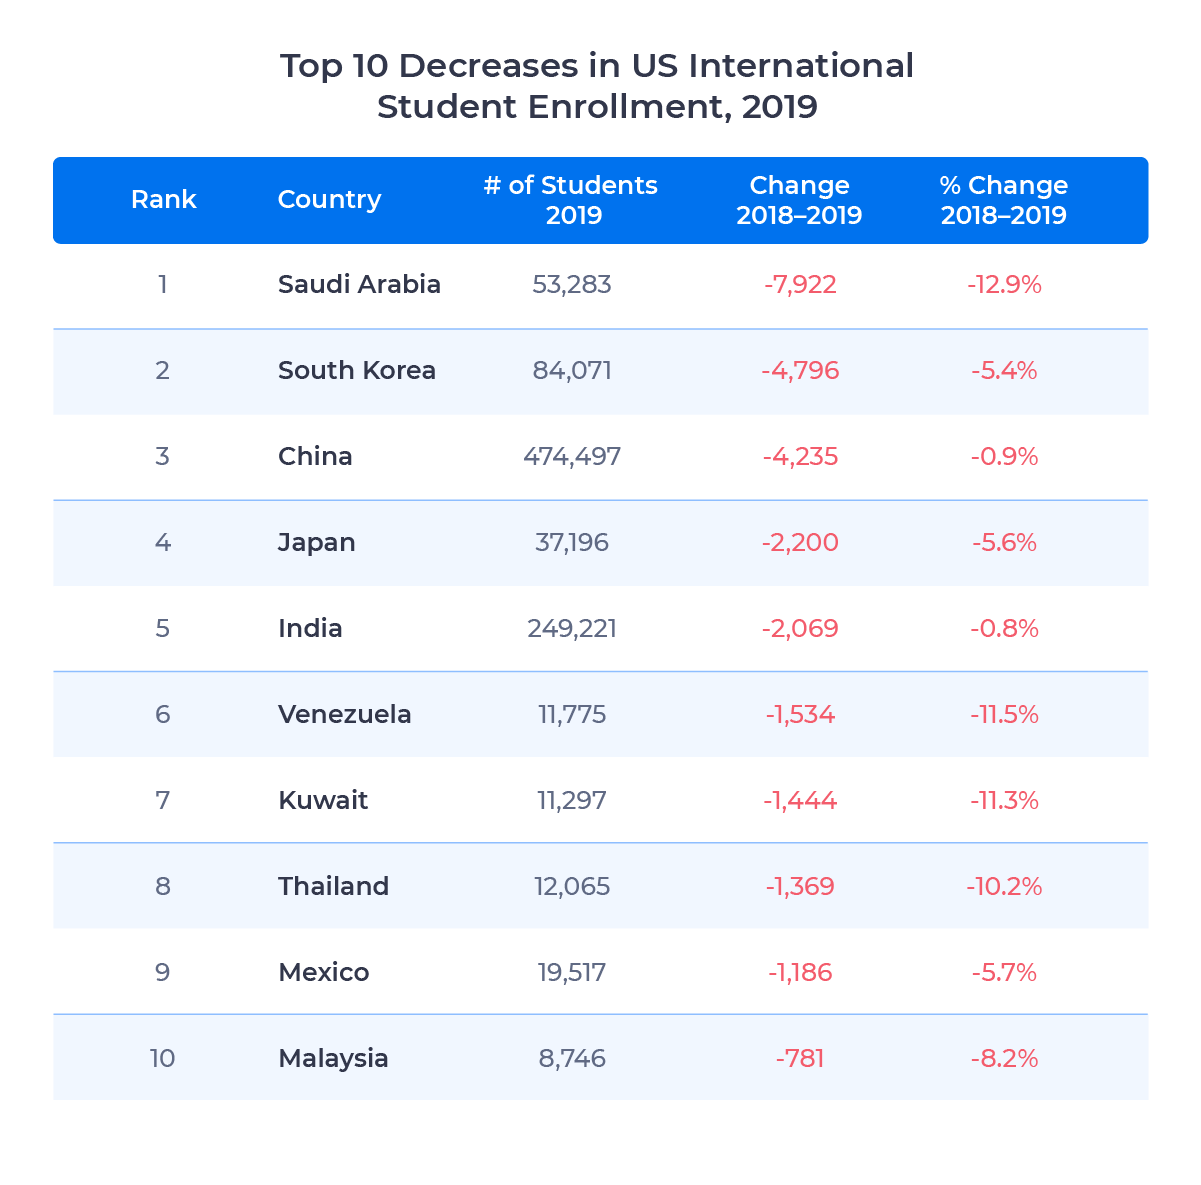 Chart showing the 10 source countries with the largest decrease in international student enrollment in the US in 2019.